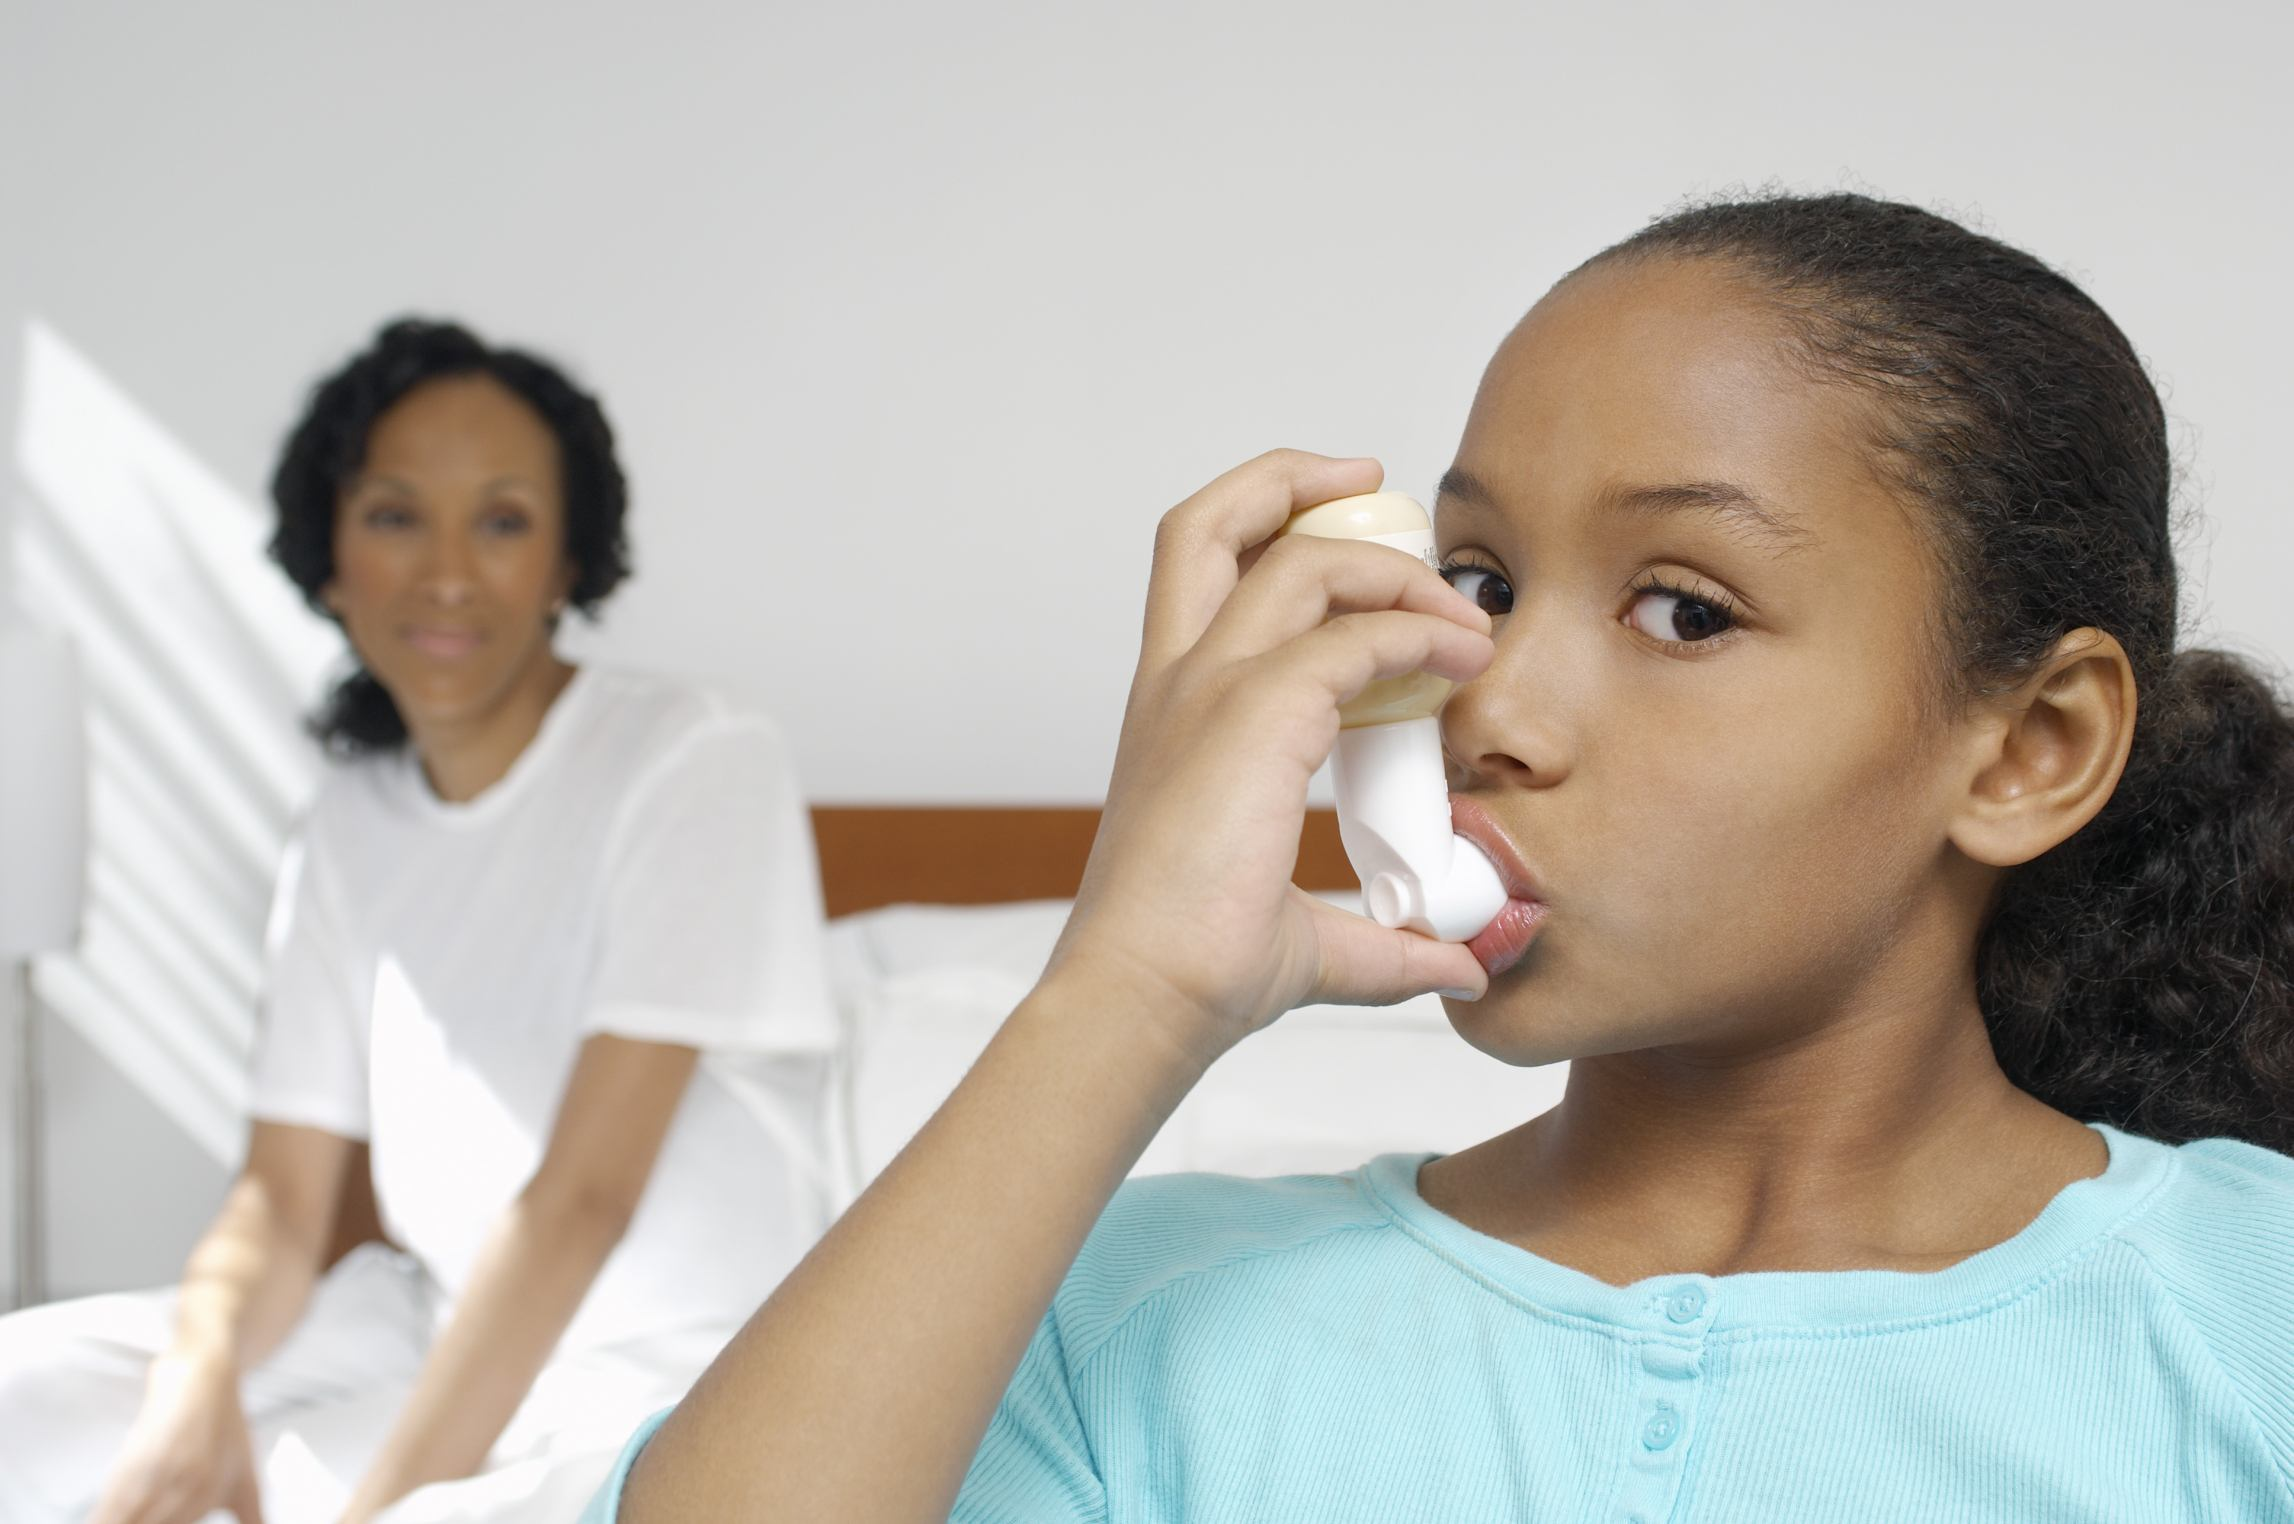 child used inhaler to control asthma symptoms. Mold could make asthma worse for sufferers